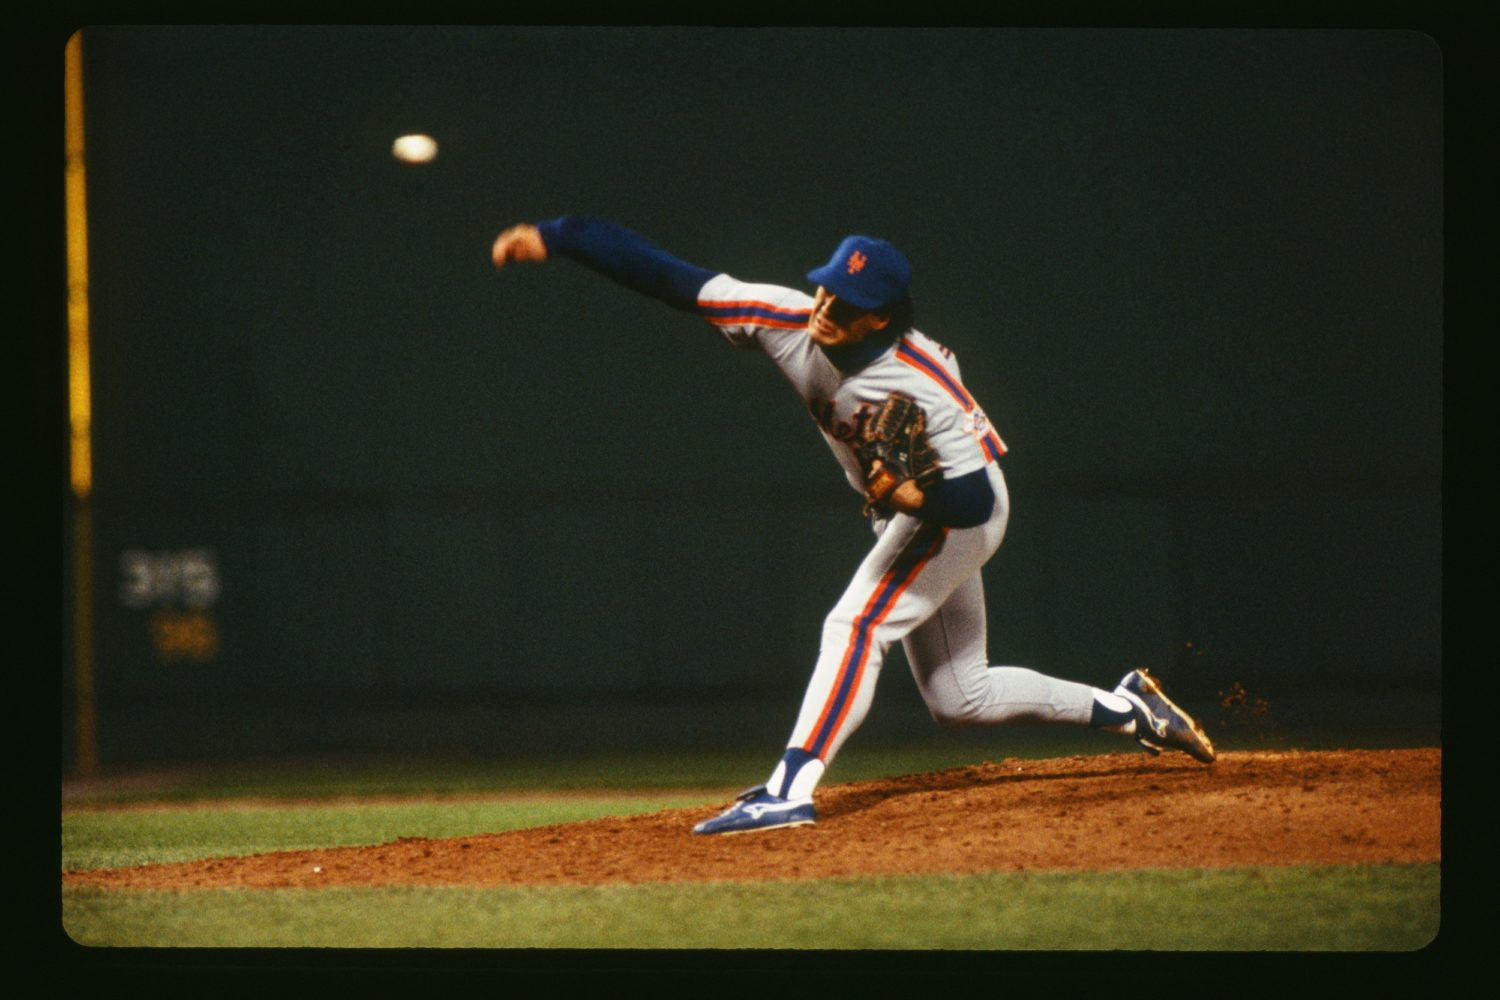 Ron Darling throws a pitch from the mound at Shea Stadium.